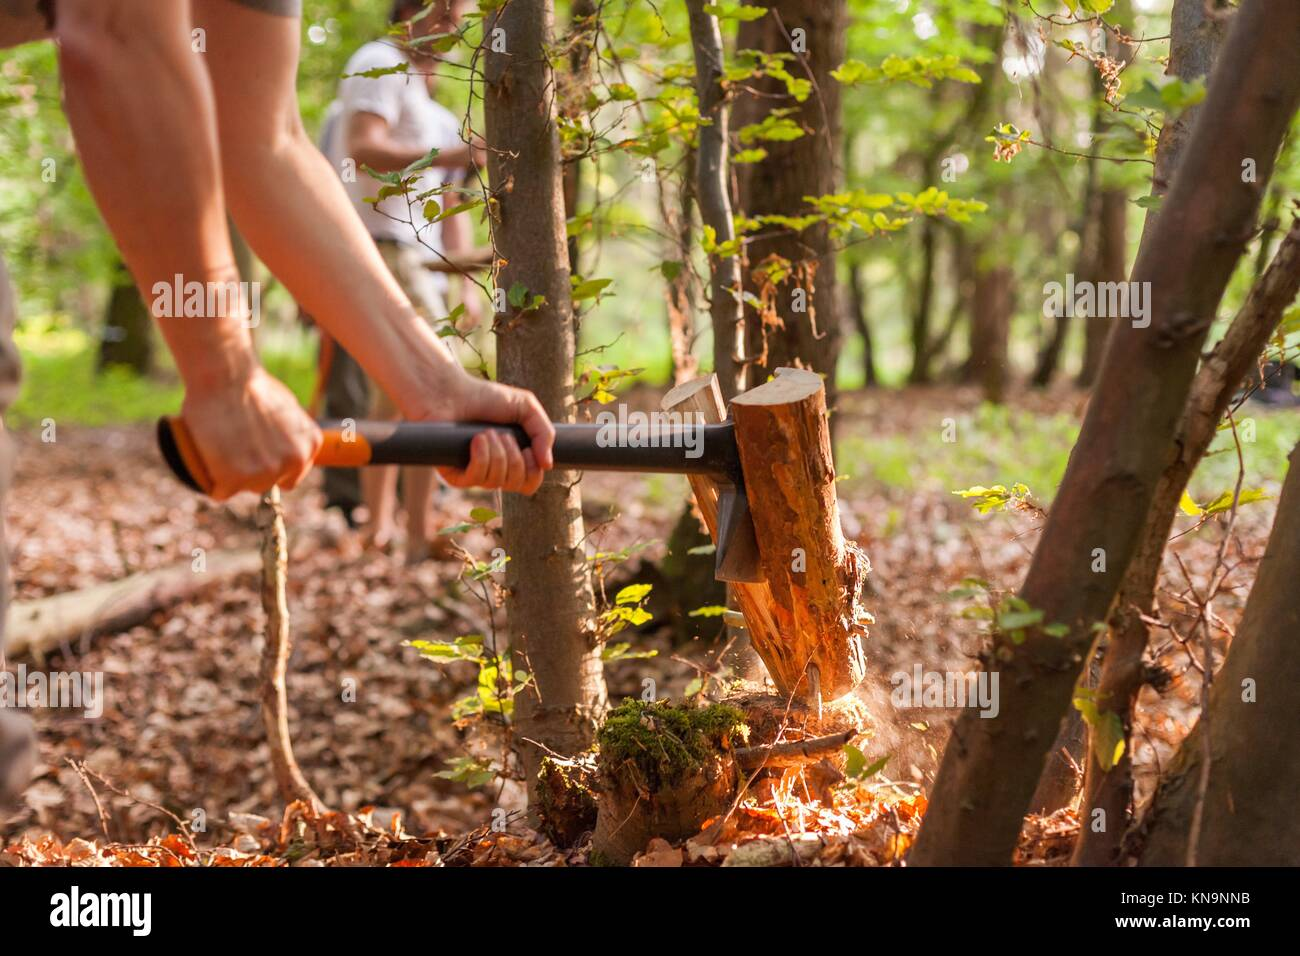 Splitting a log of firewood with an axe in a forest. - Stock Image